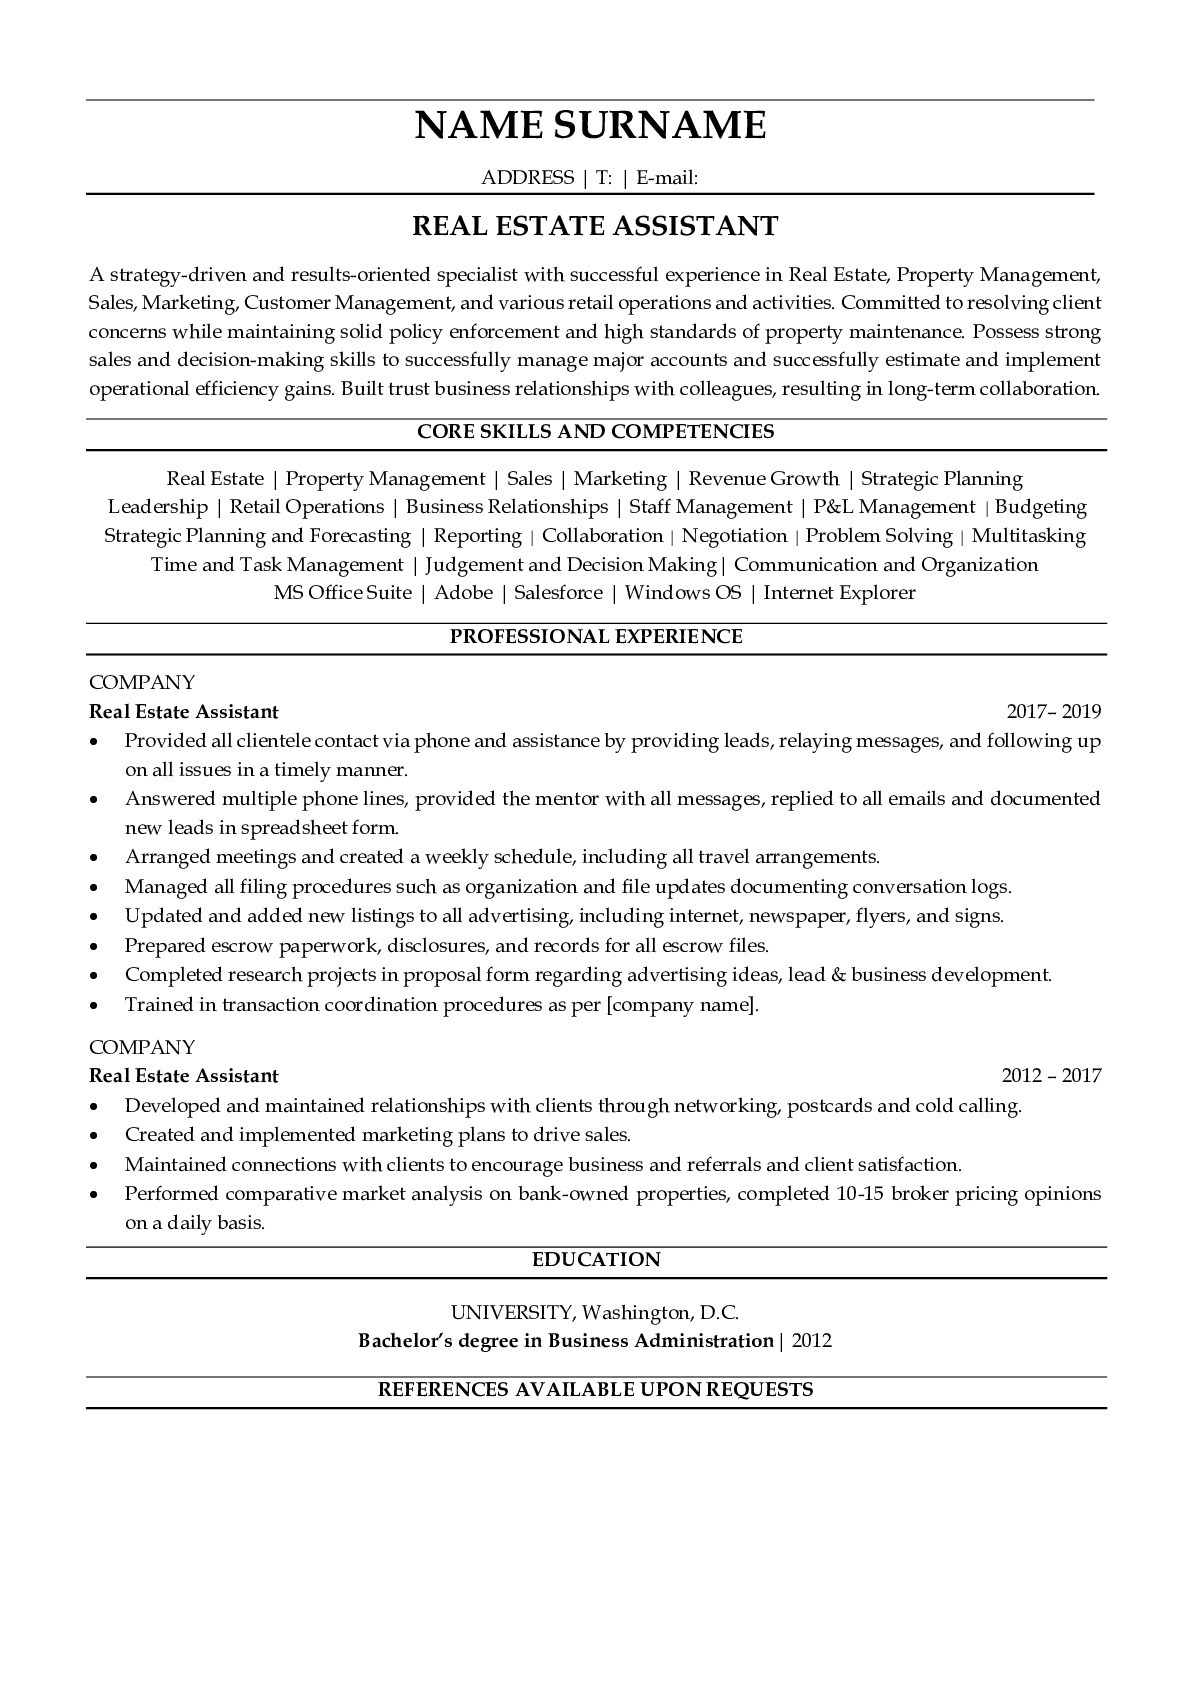 Resume Example for Real Estate Assistant